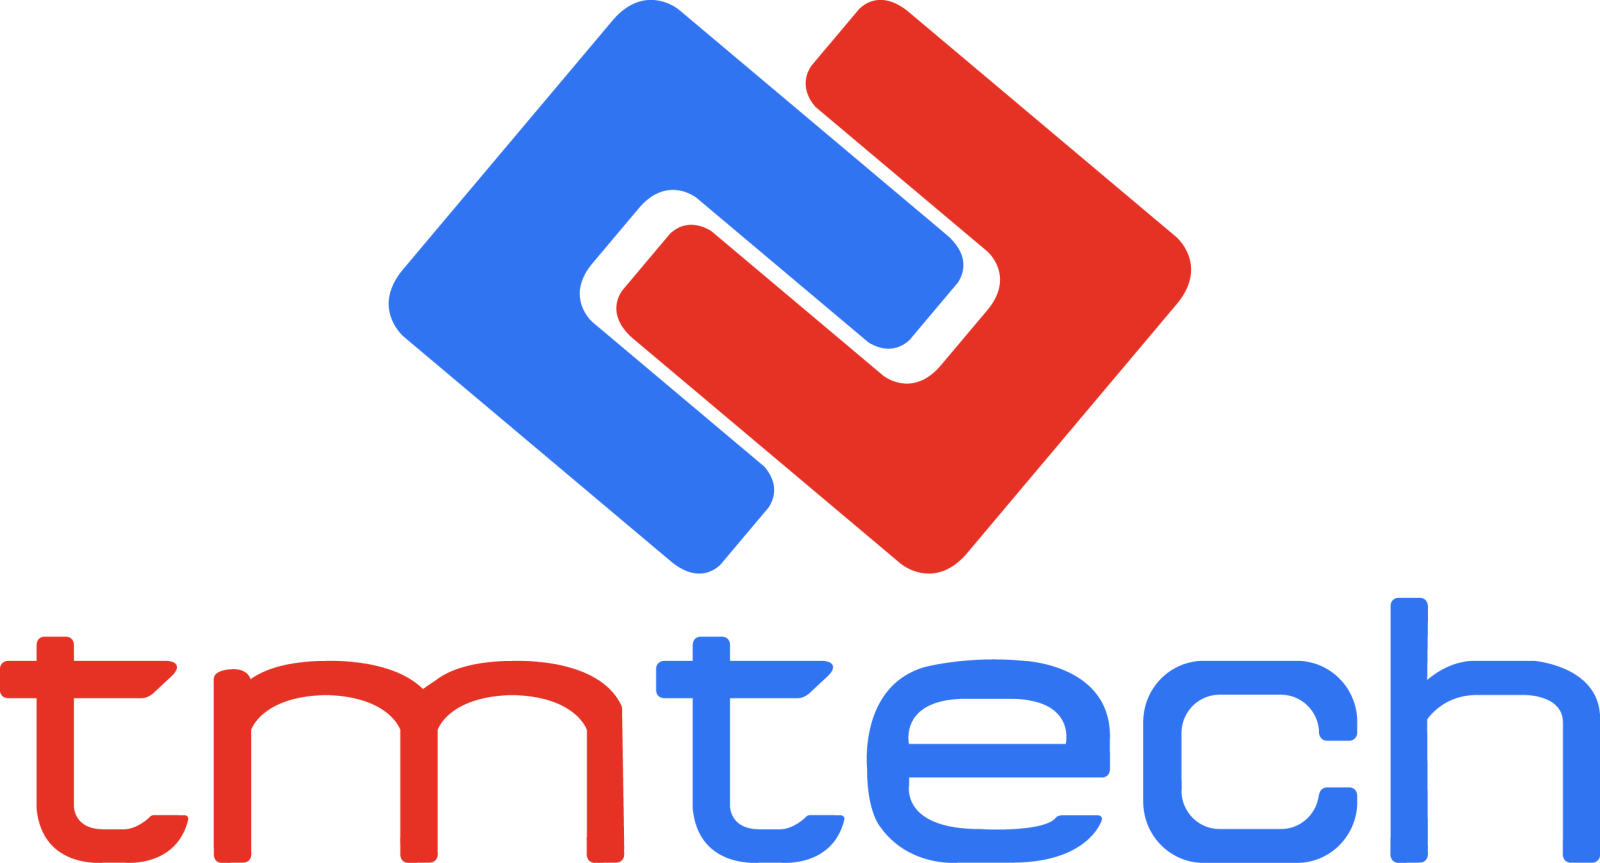 logo t&m tech